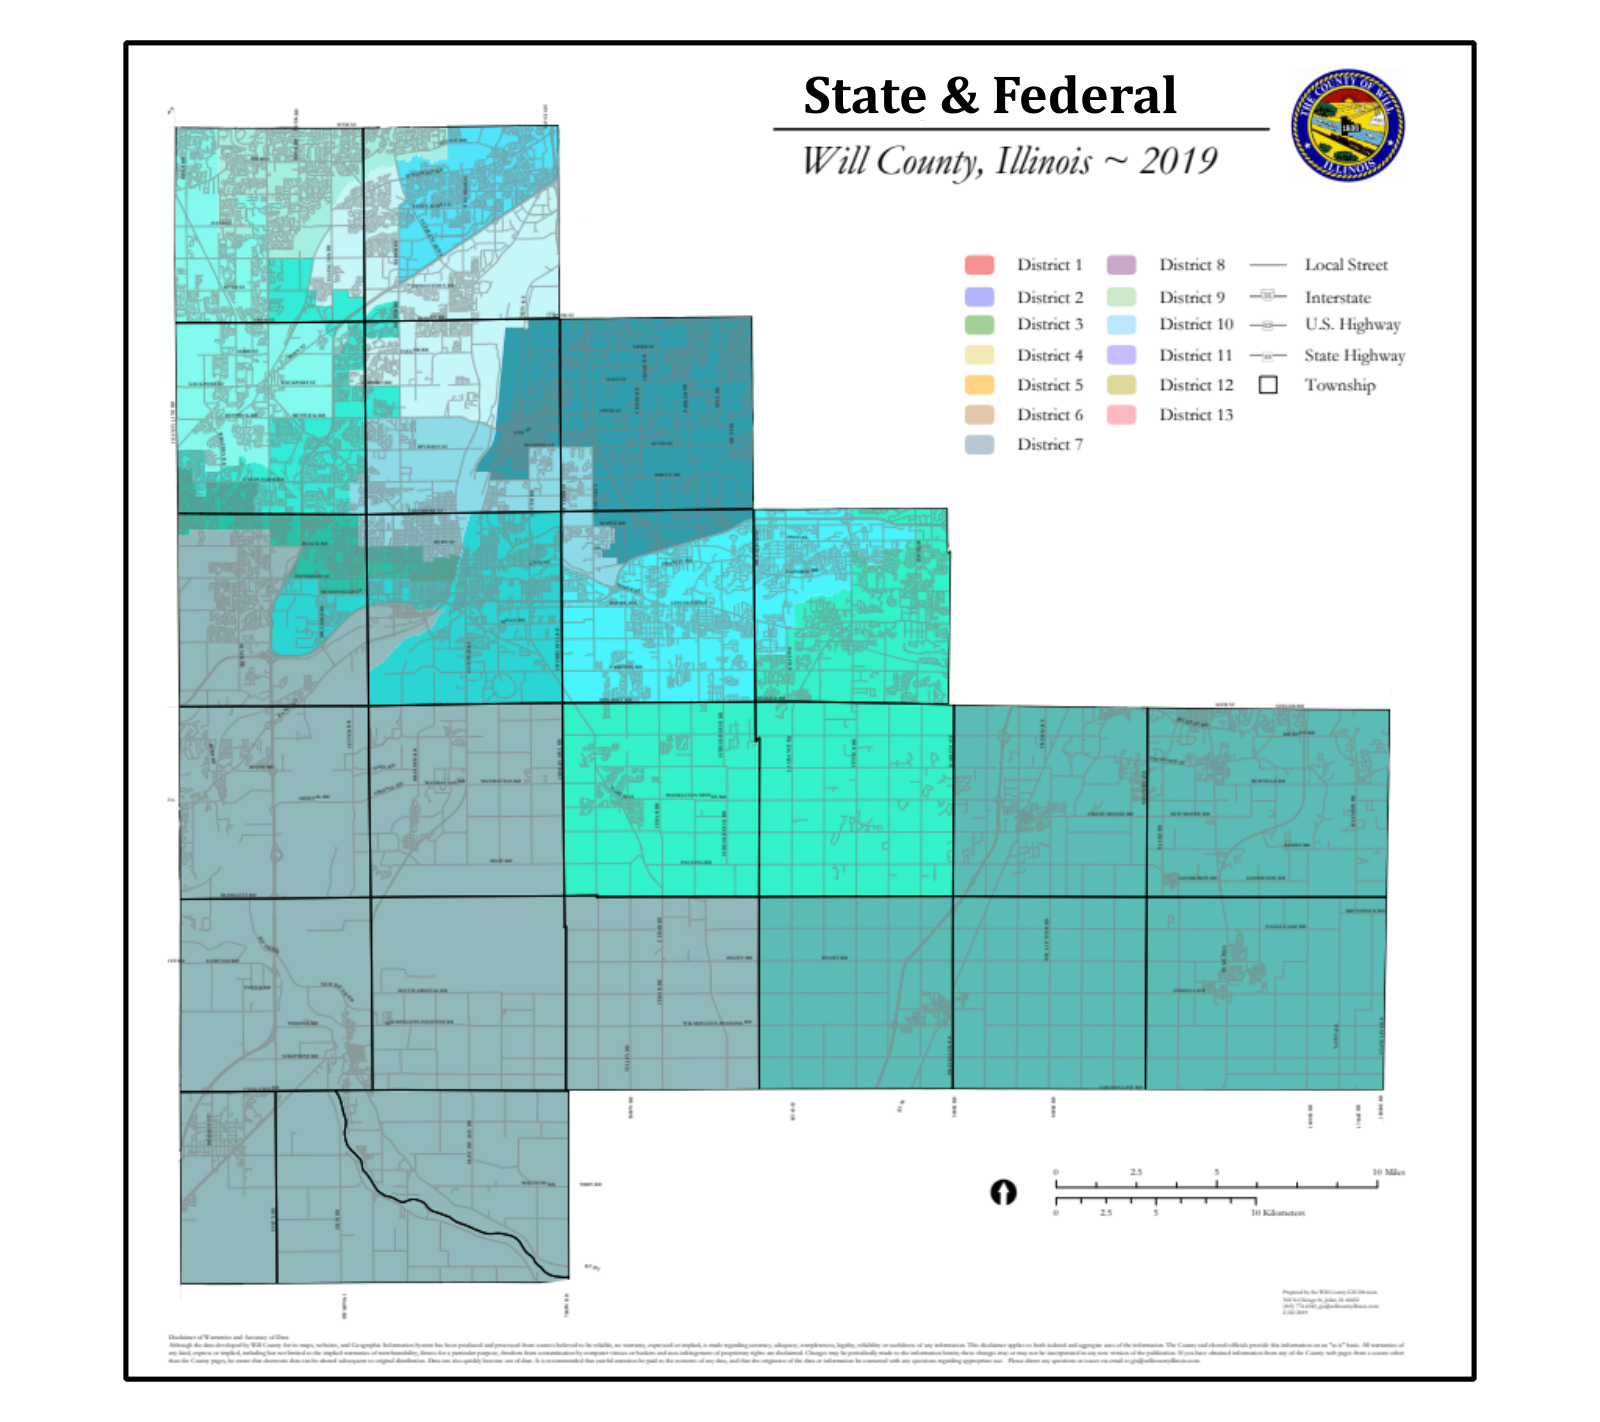 Stat & Federal Districts link